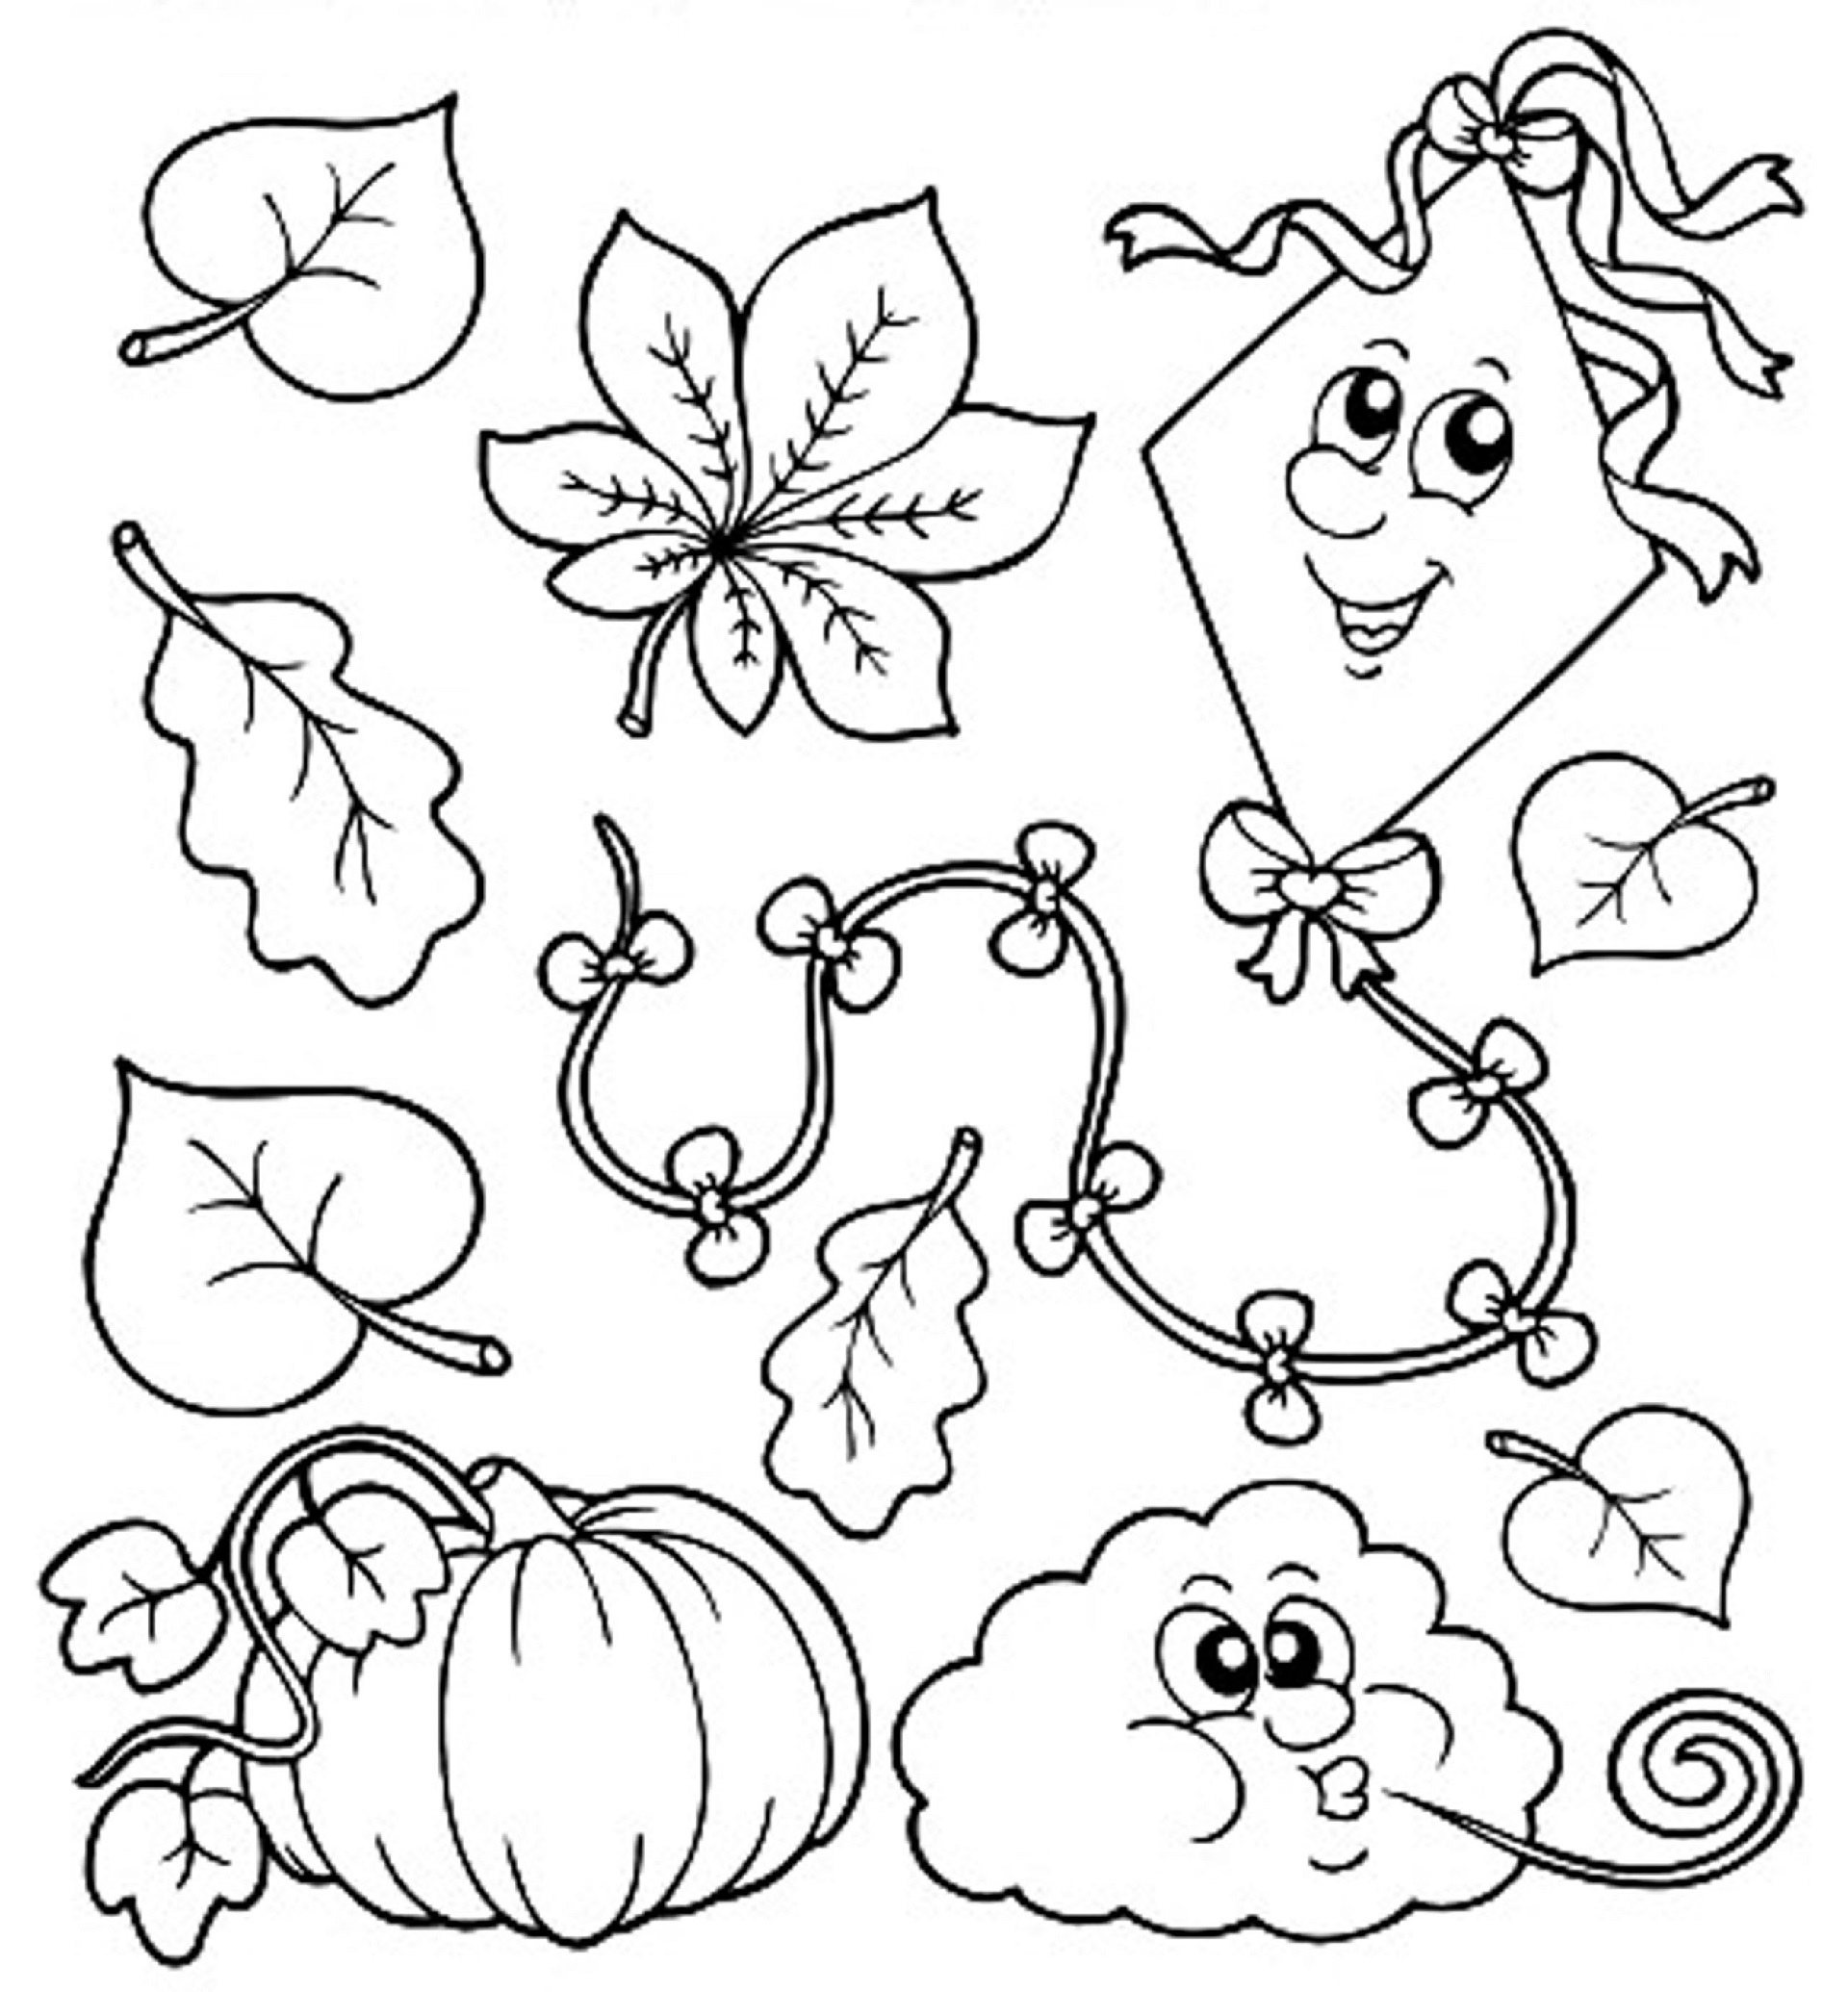 Kids Holding Hand Coloring Pages